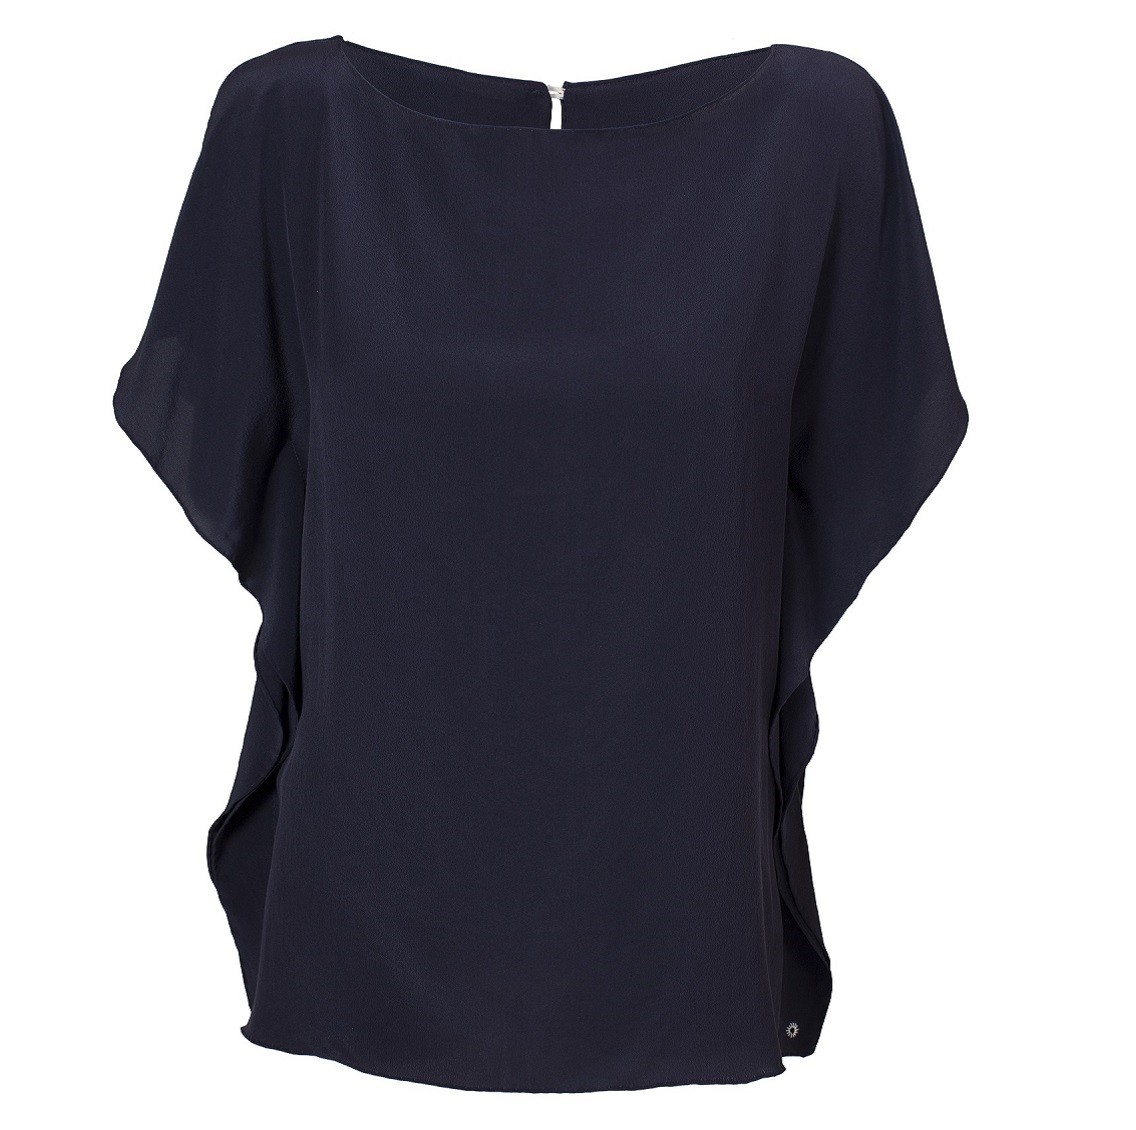 Split-sleeve Top - Navy - Front (1x1)